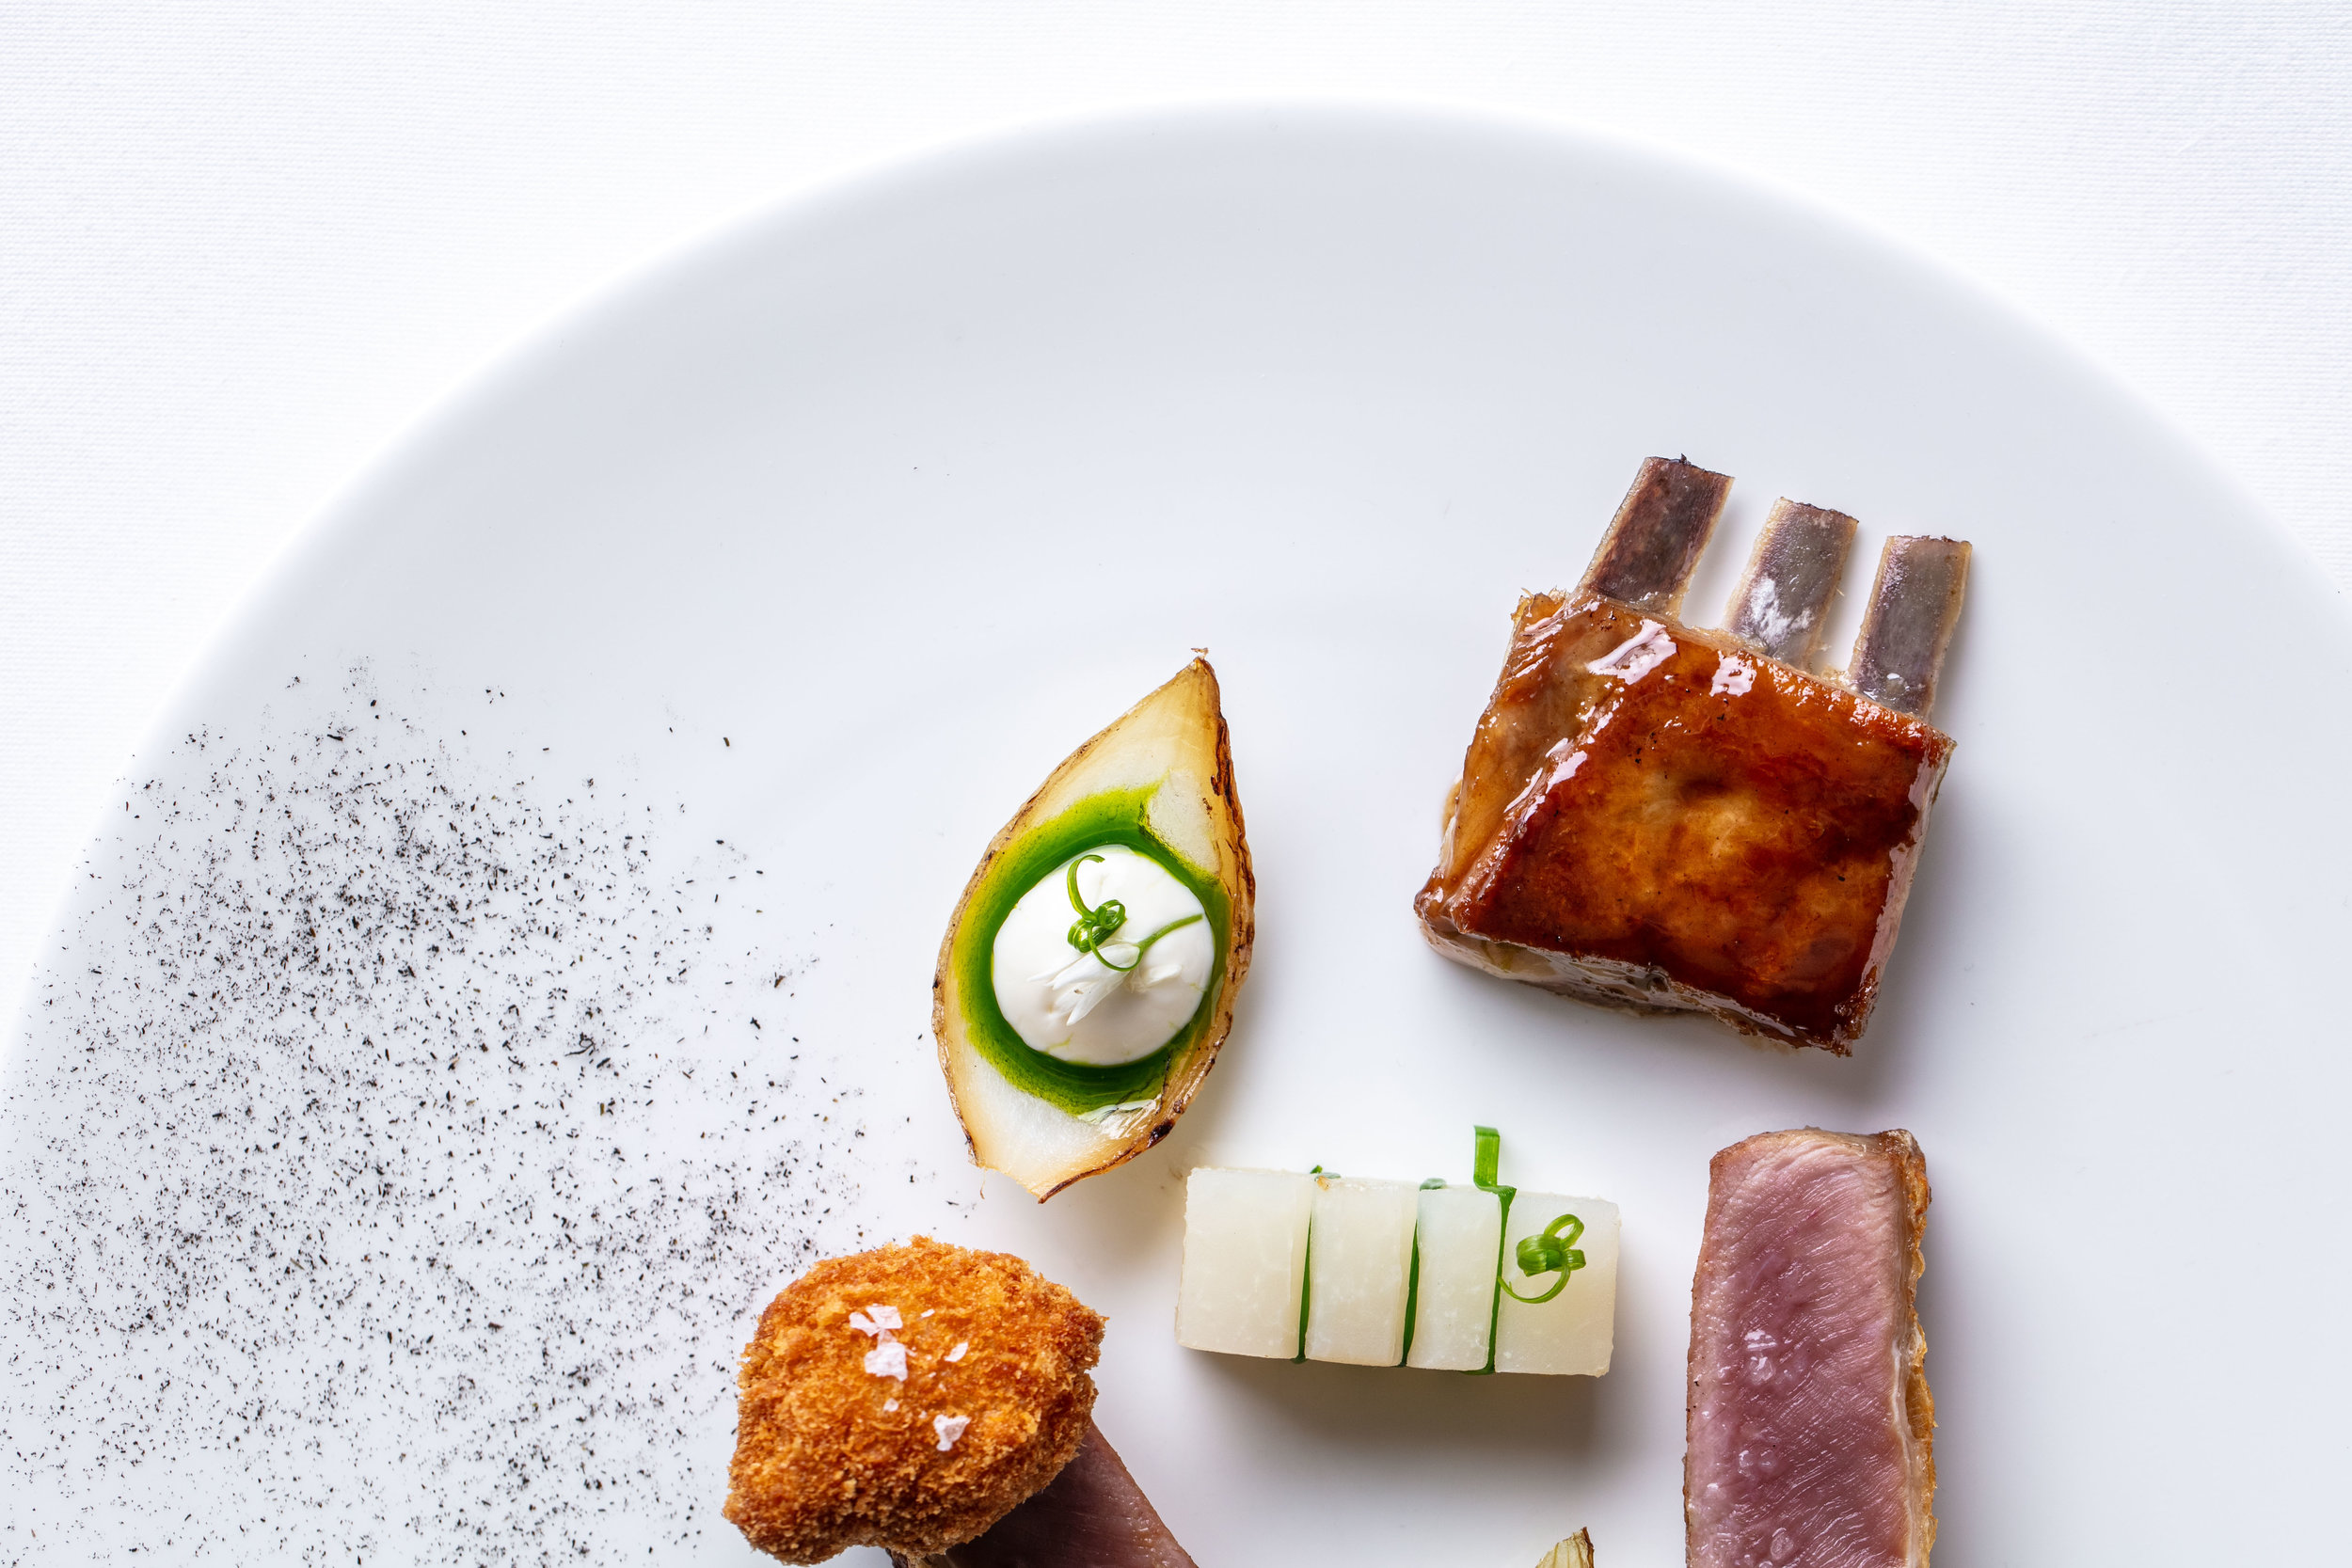 Launceston_Place_099_Milk_fed_lamb_Smoked_Yogurt_Kholrabi_9886 copy.jpg